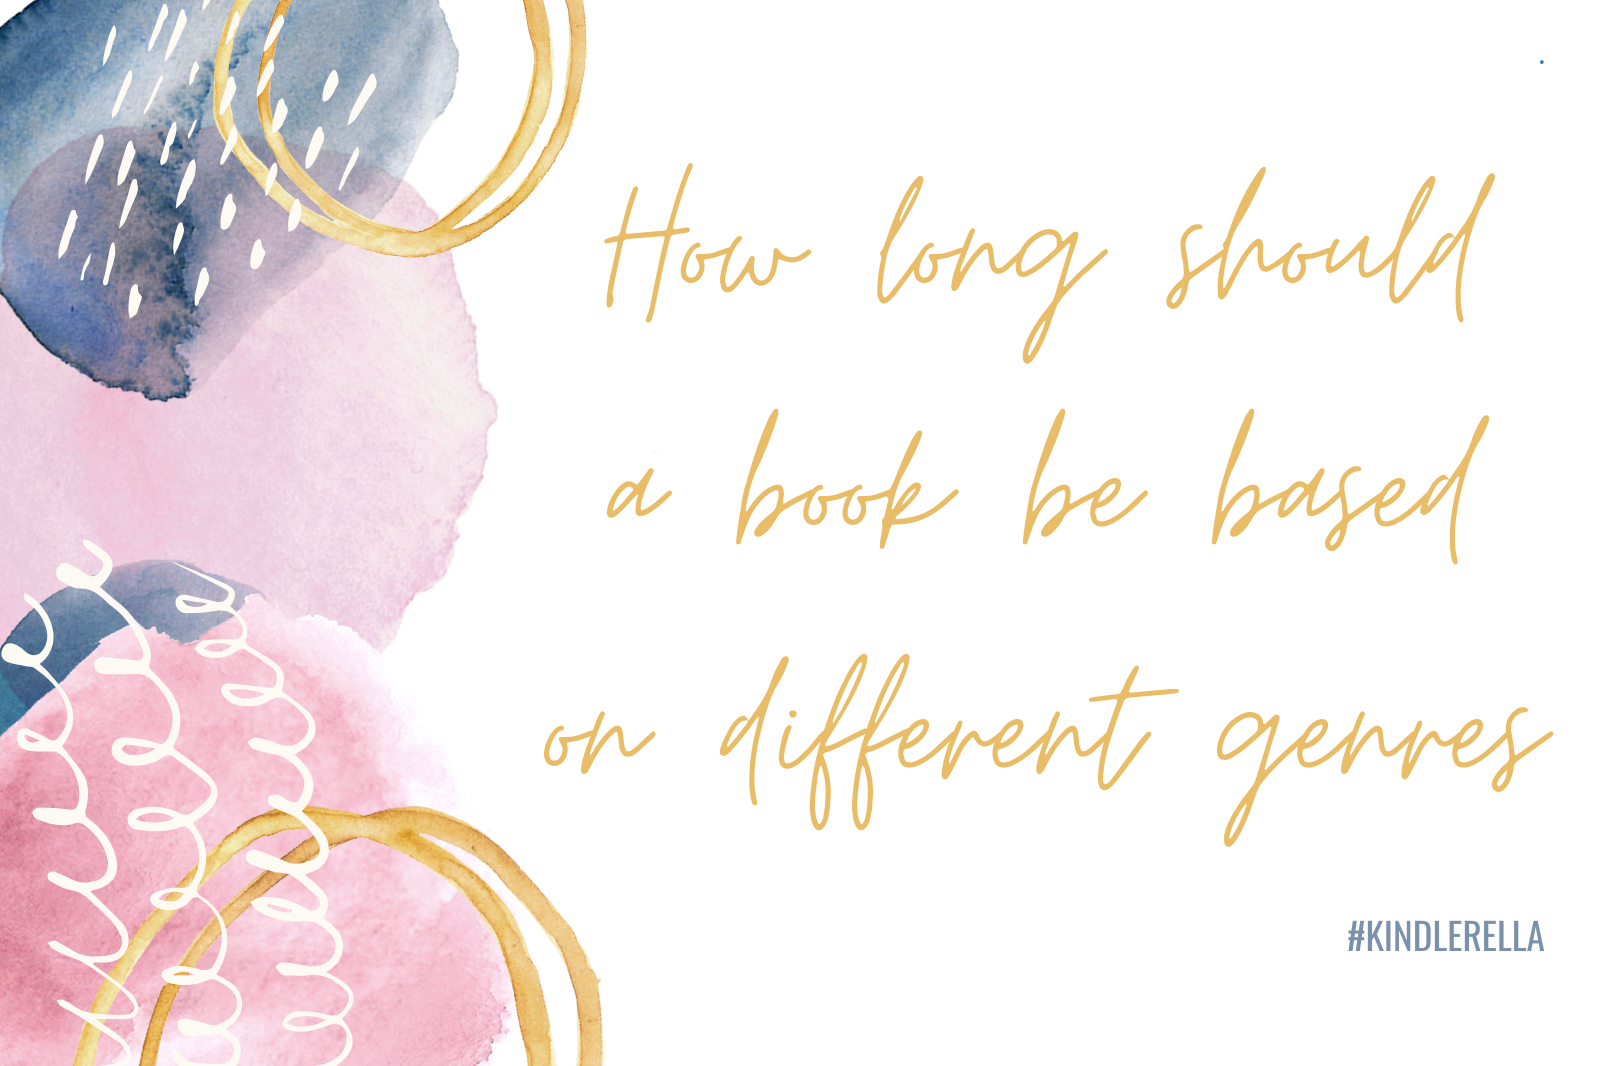 How long should a novel be based on different genres